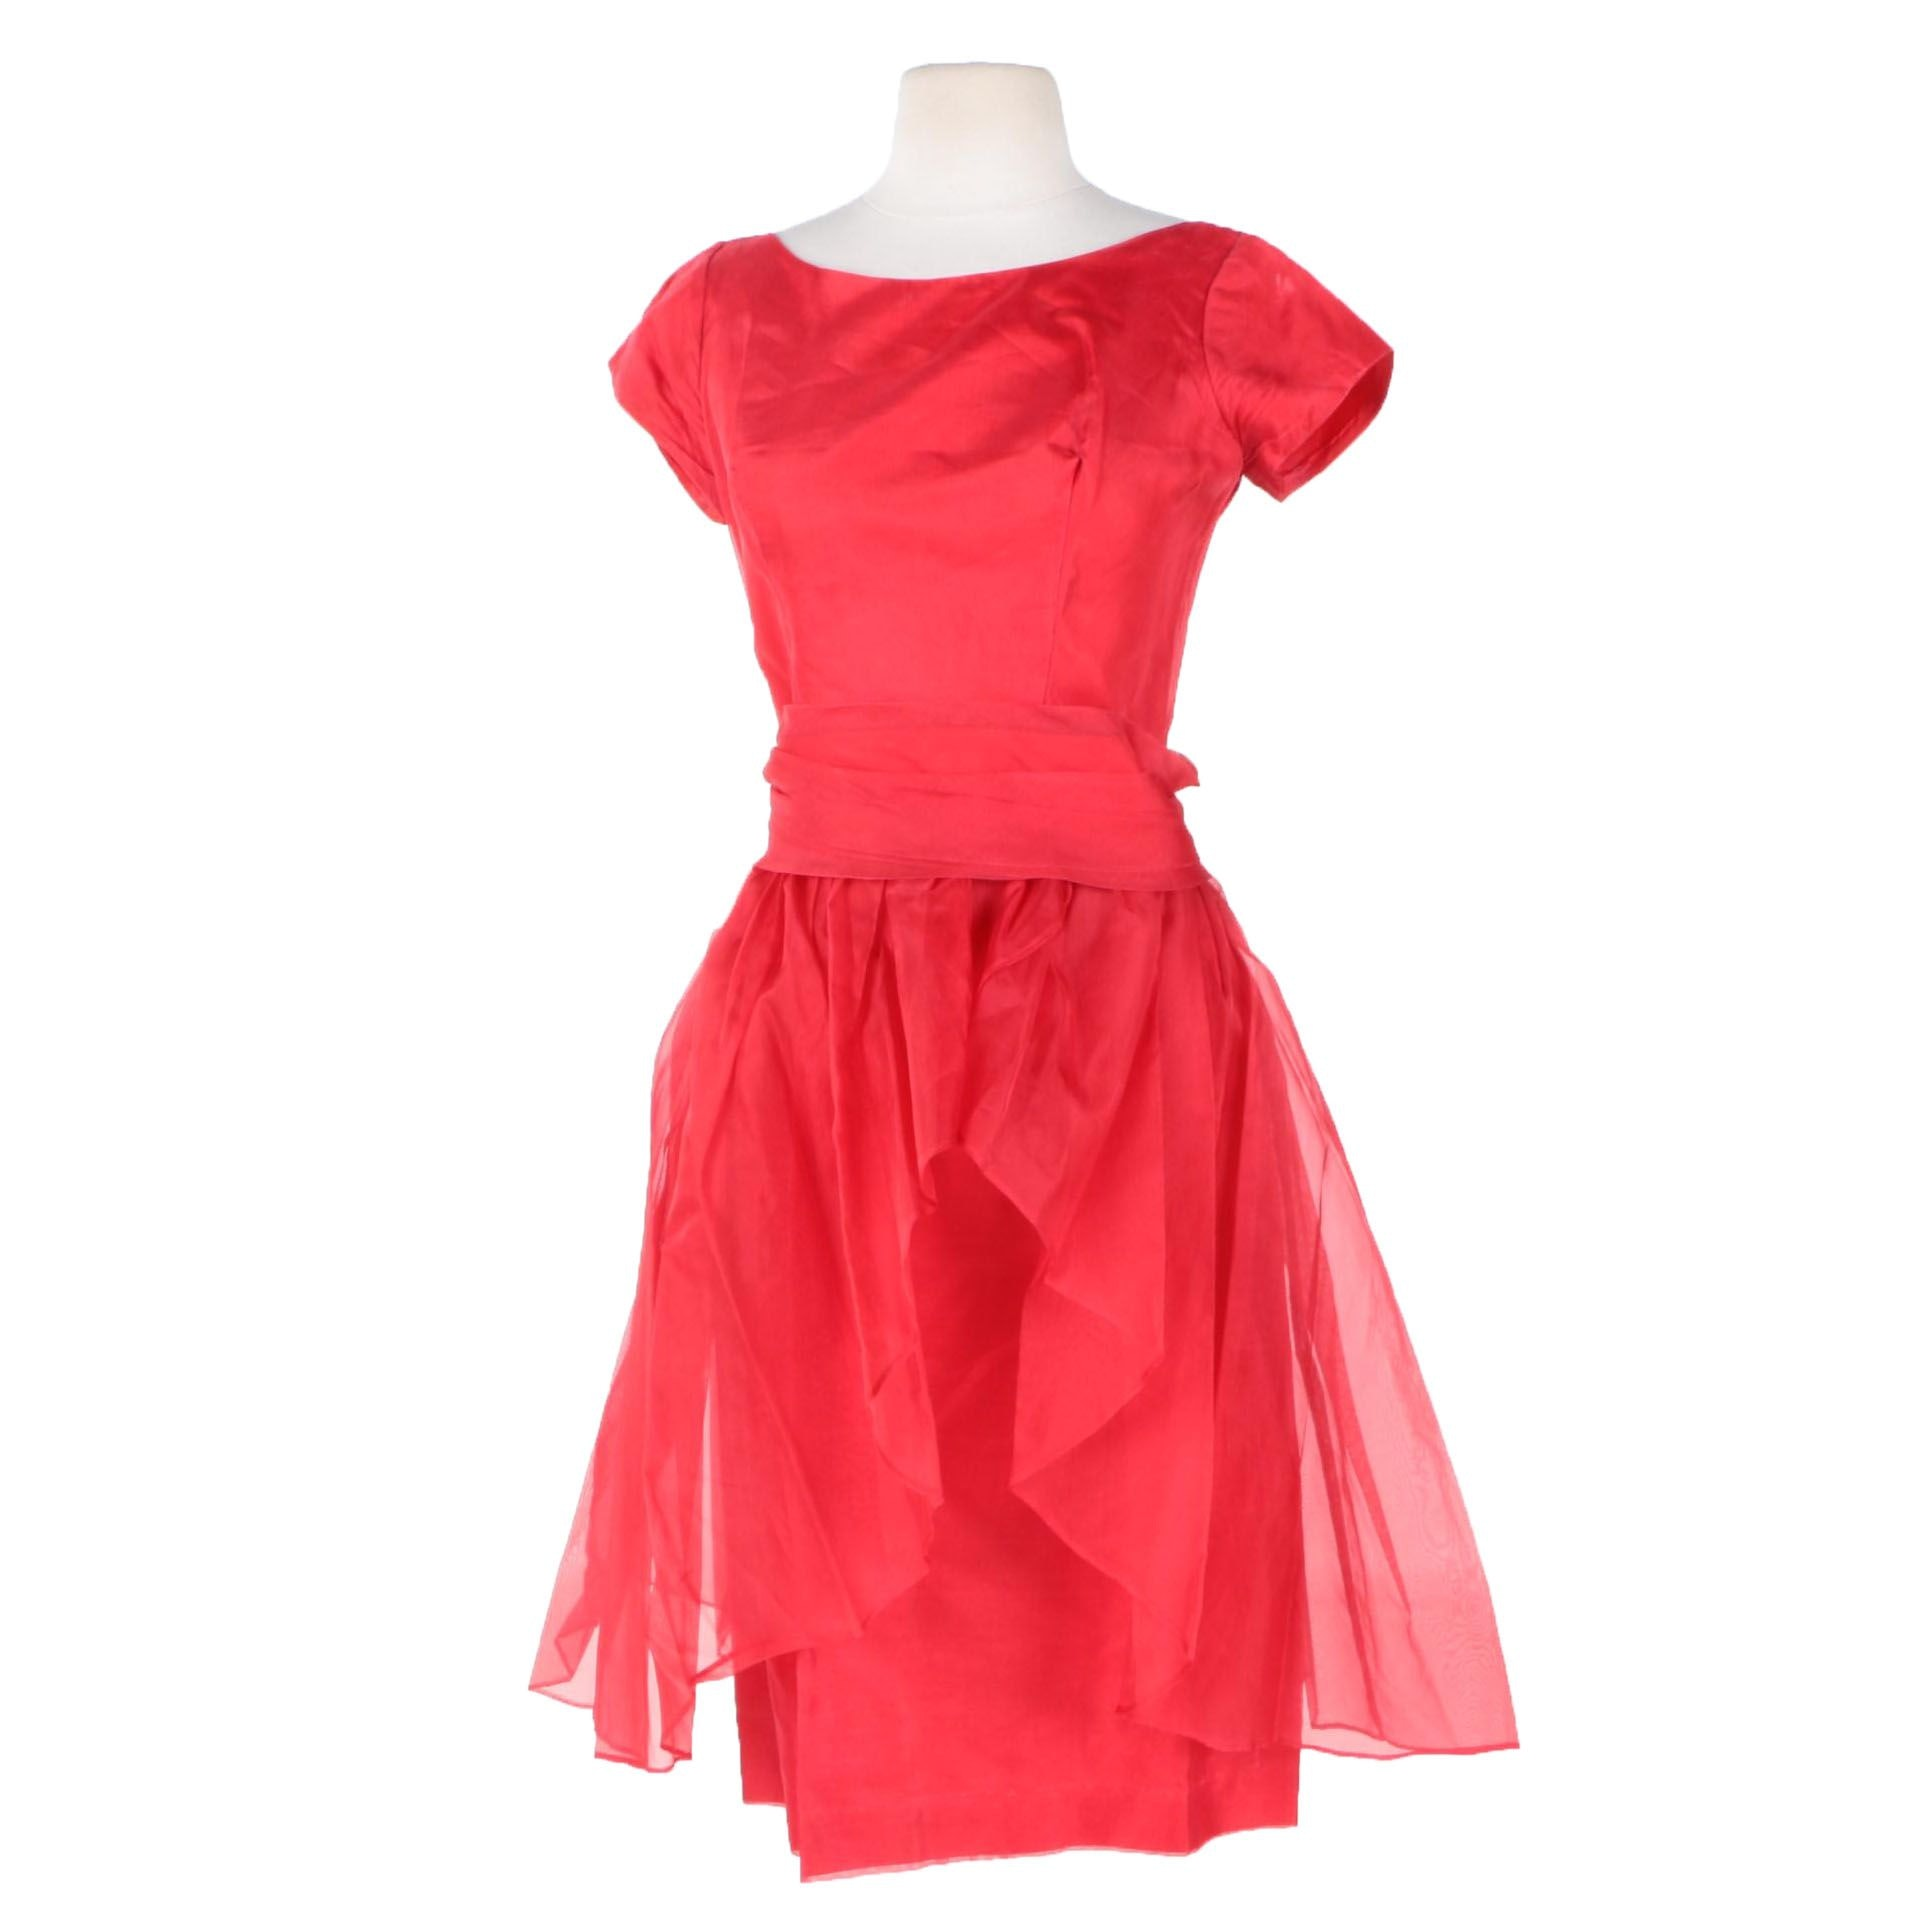 Vintage Red Sheath Dress with Removable Organza Skirt and Belt